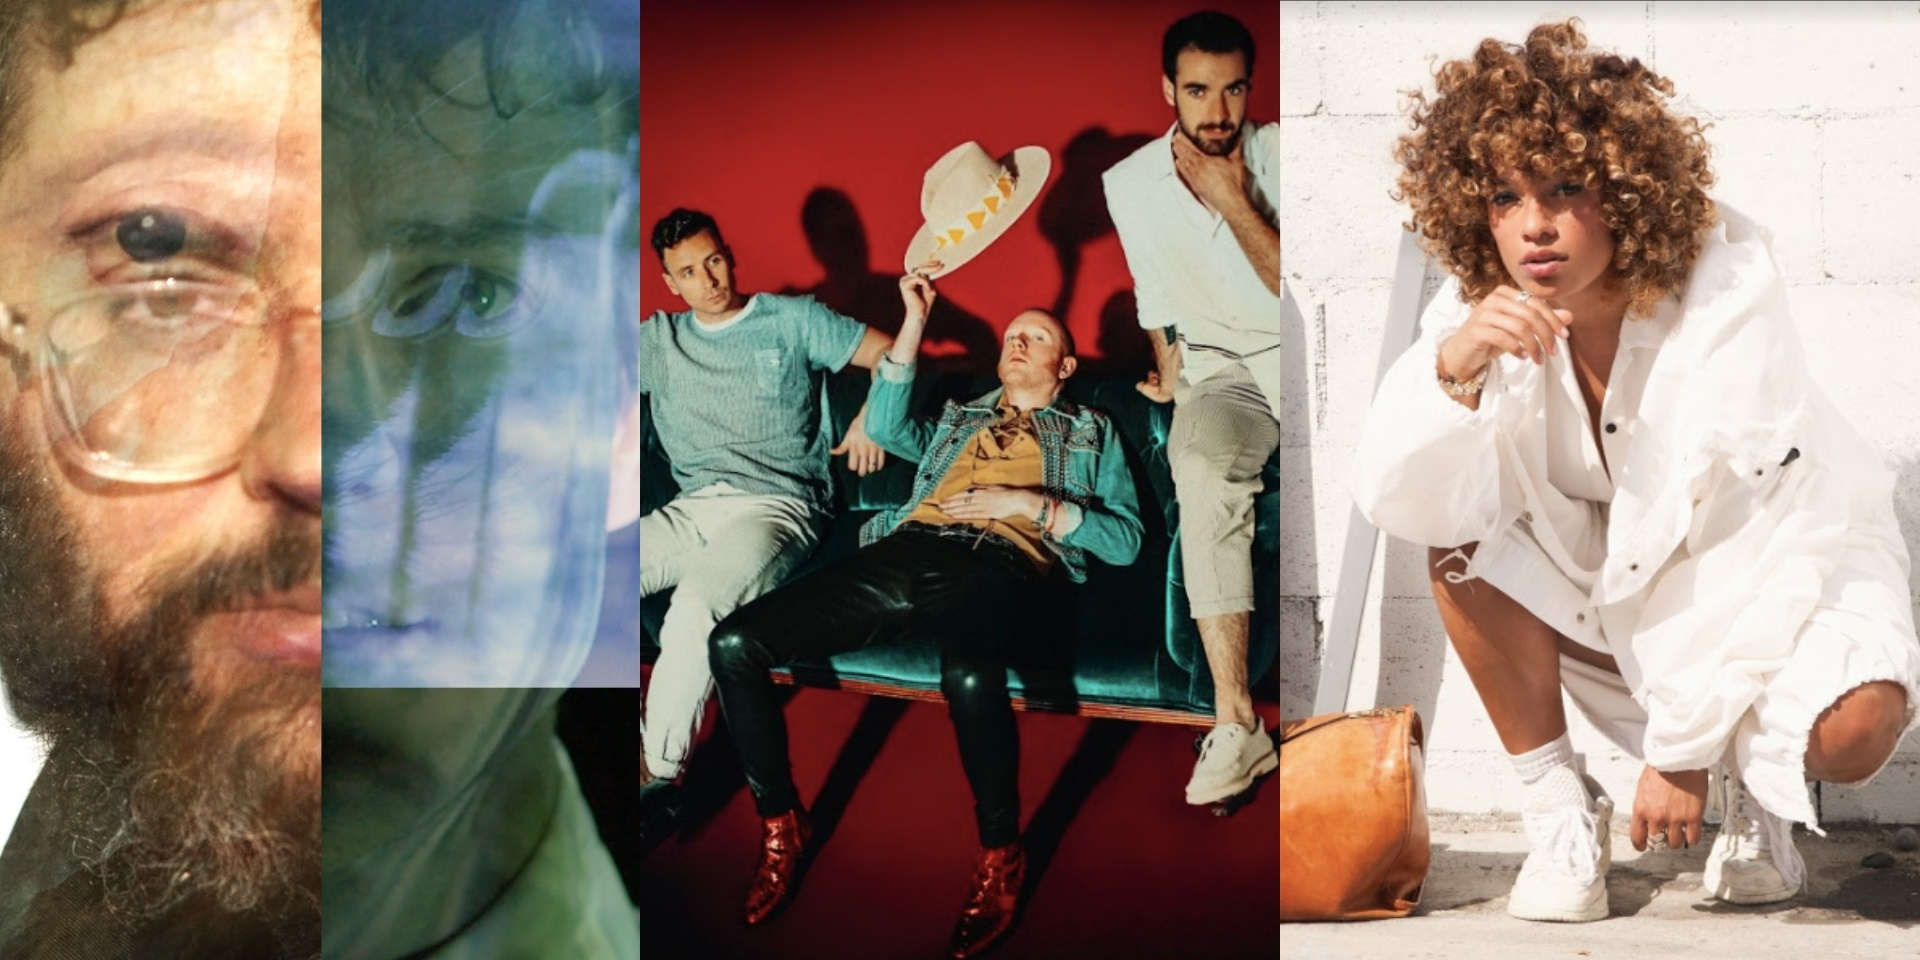 MGMT and Starley to co-headline AIA Glow Festival 2020 with Two Door Cinema Club